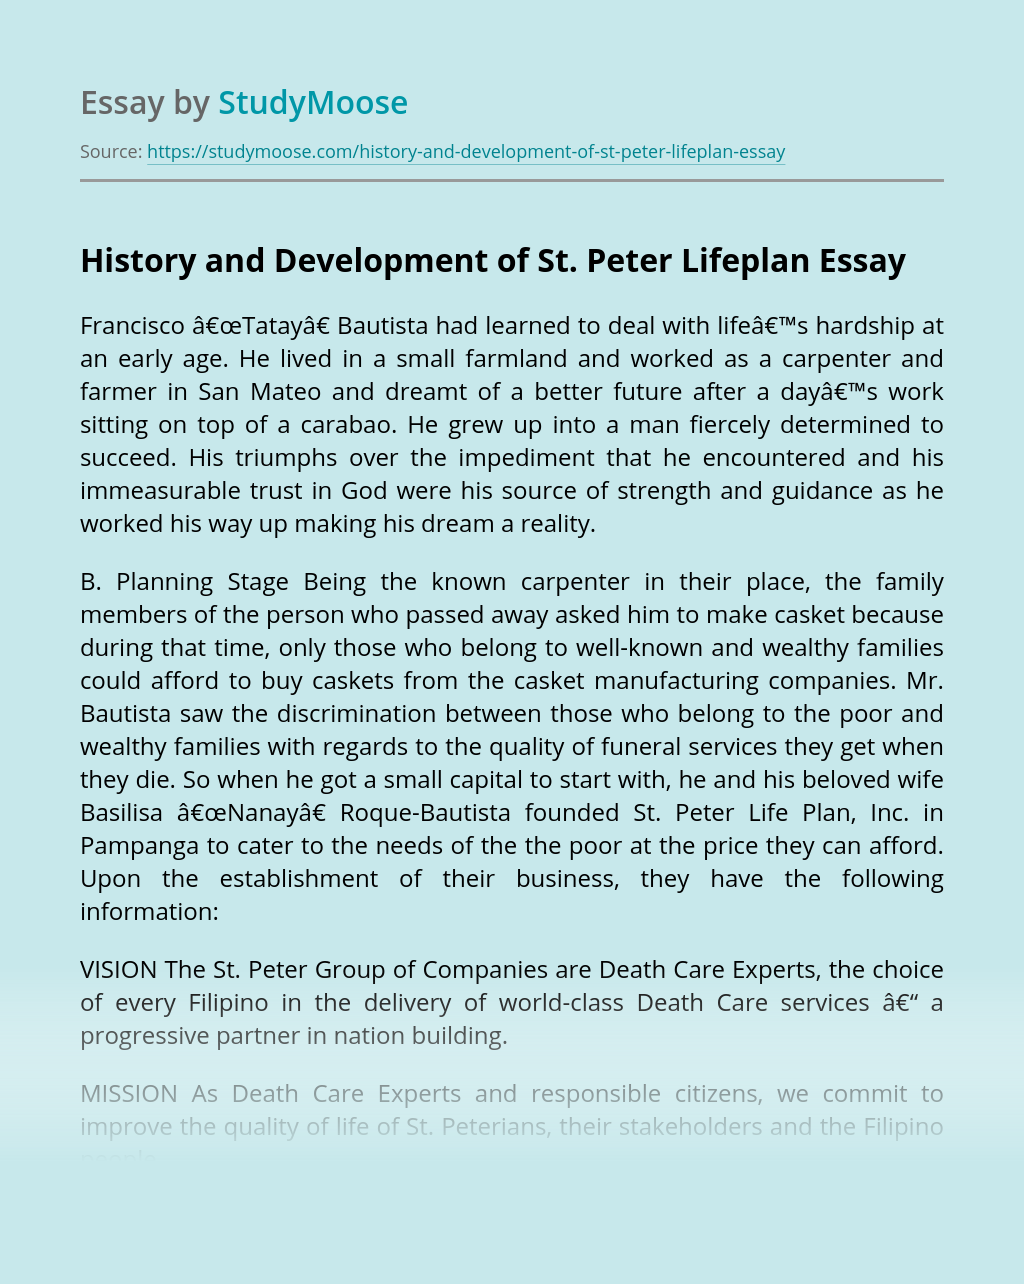 History and Development of St. Peter Lifeplan